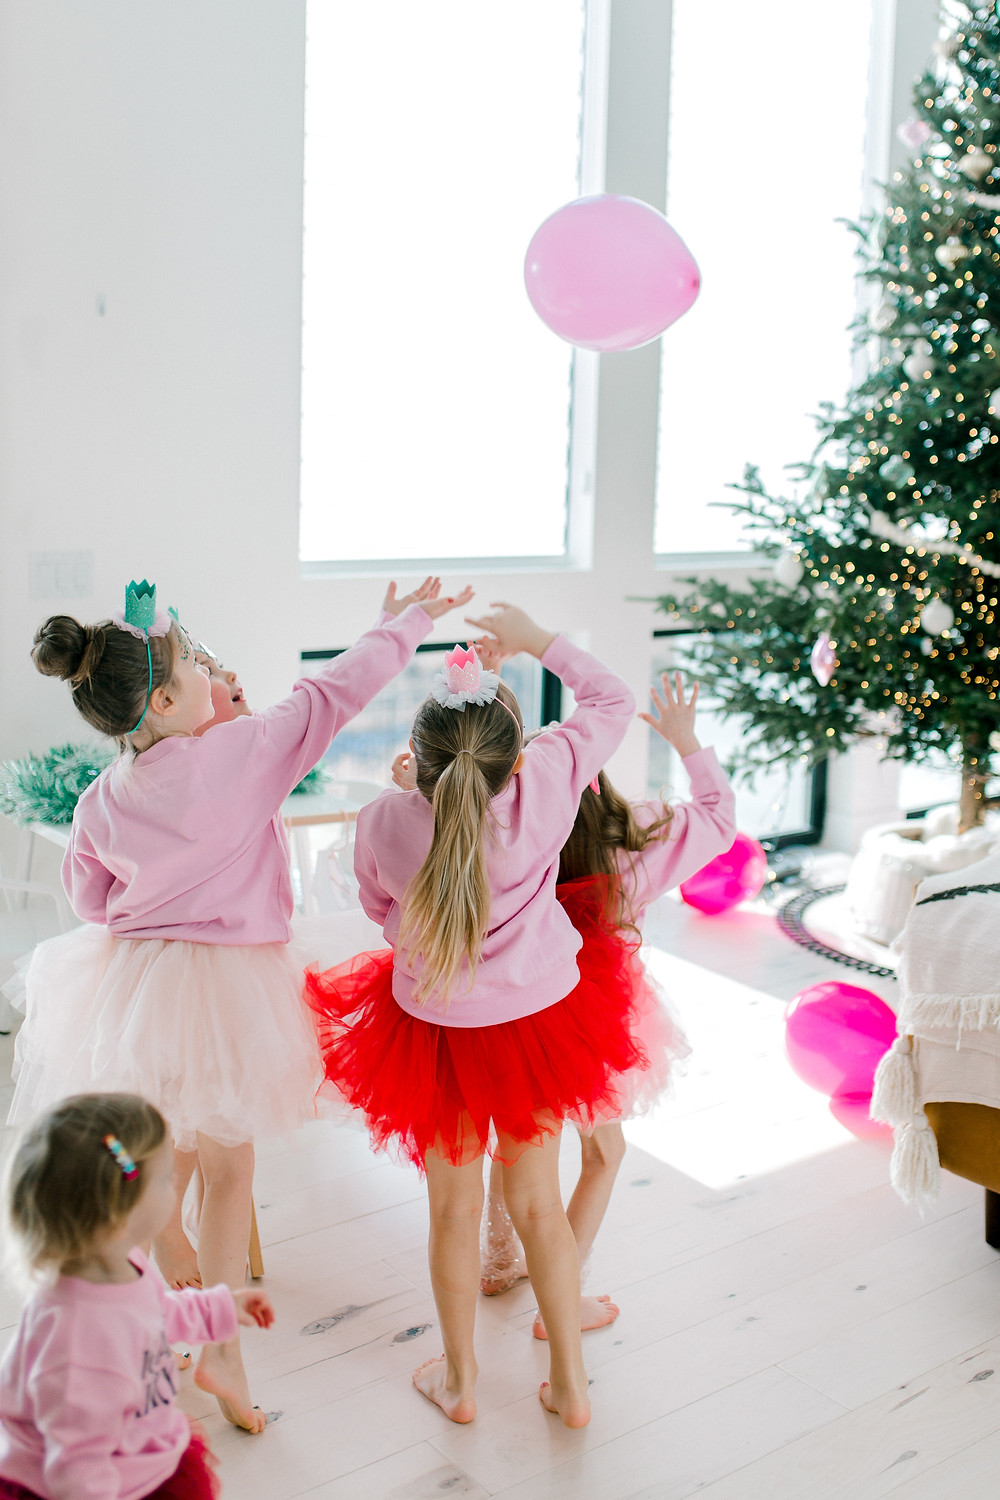 Sugarplum fairy gang plays in their pink, white and red tutu's while playing with pink balloons in front of a lit Christmas tree.